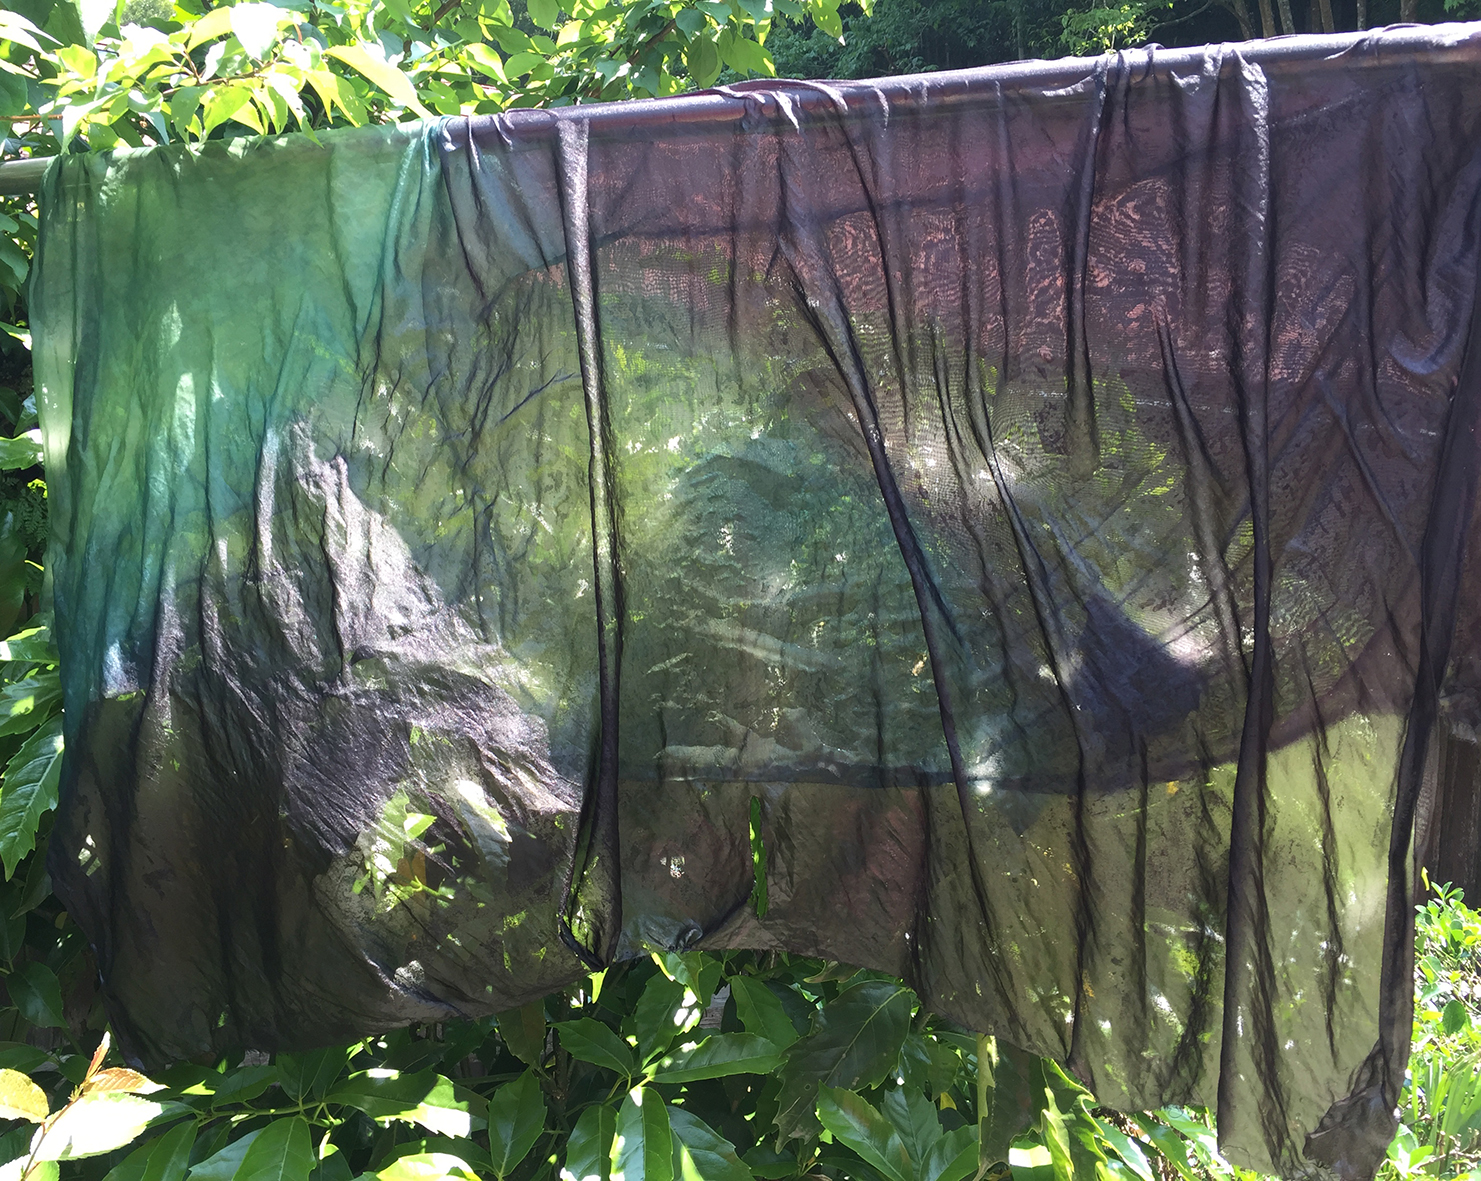 Silks drying in sun